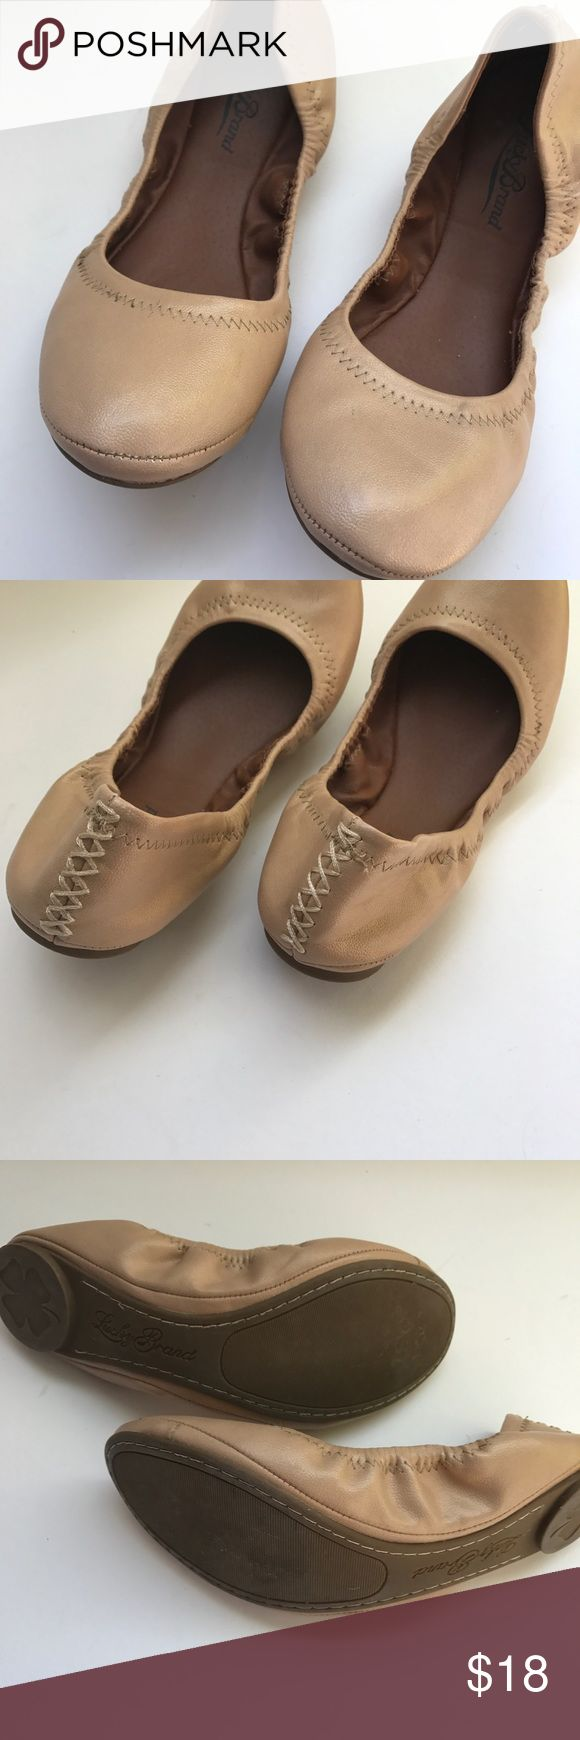 Lucky Brand Shimmer Ballet Flats // 7.5 Lucky Brand Shimmer Gold/Camel Ballet Flats. Worn only twice. Size is not marked but fits a 7.5 Lucky Brand Shoes Flats & Loafers